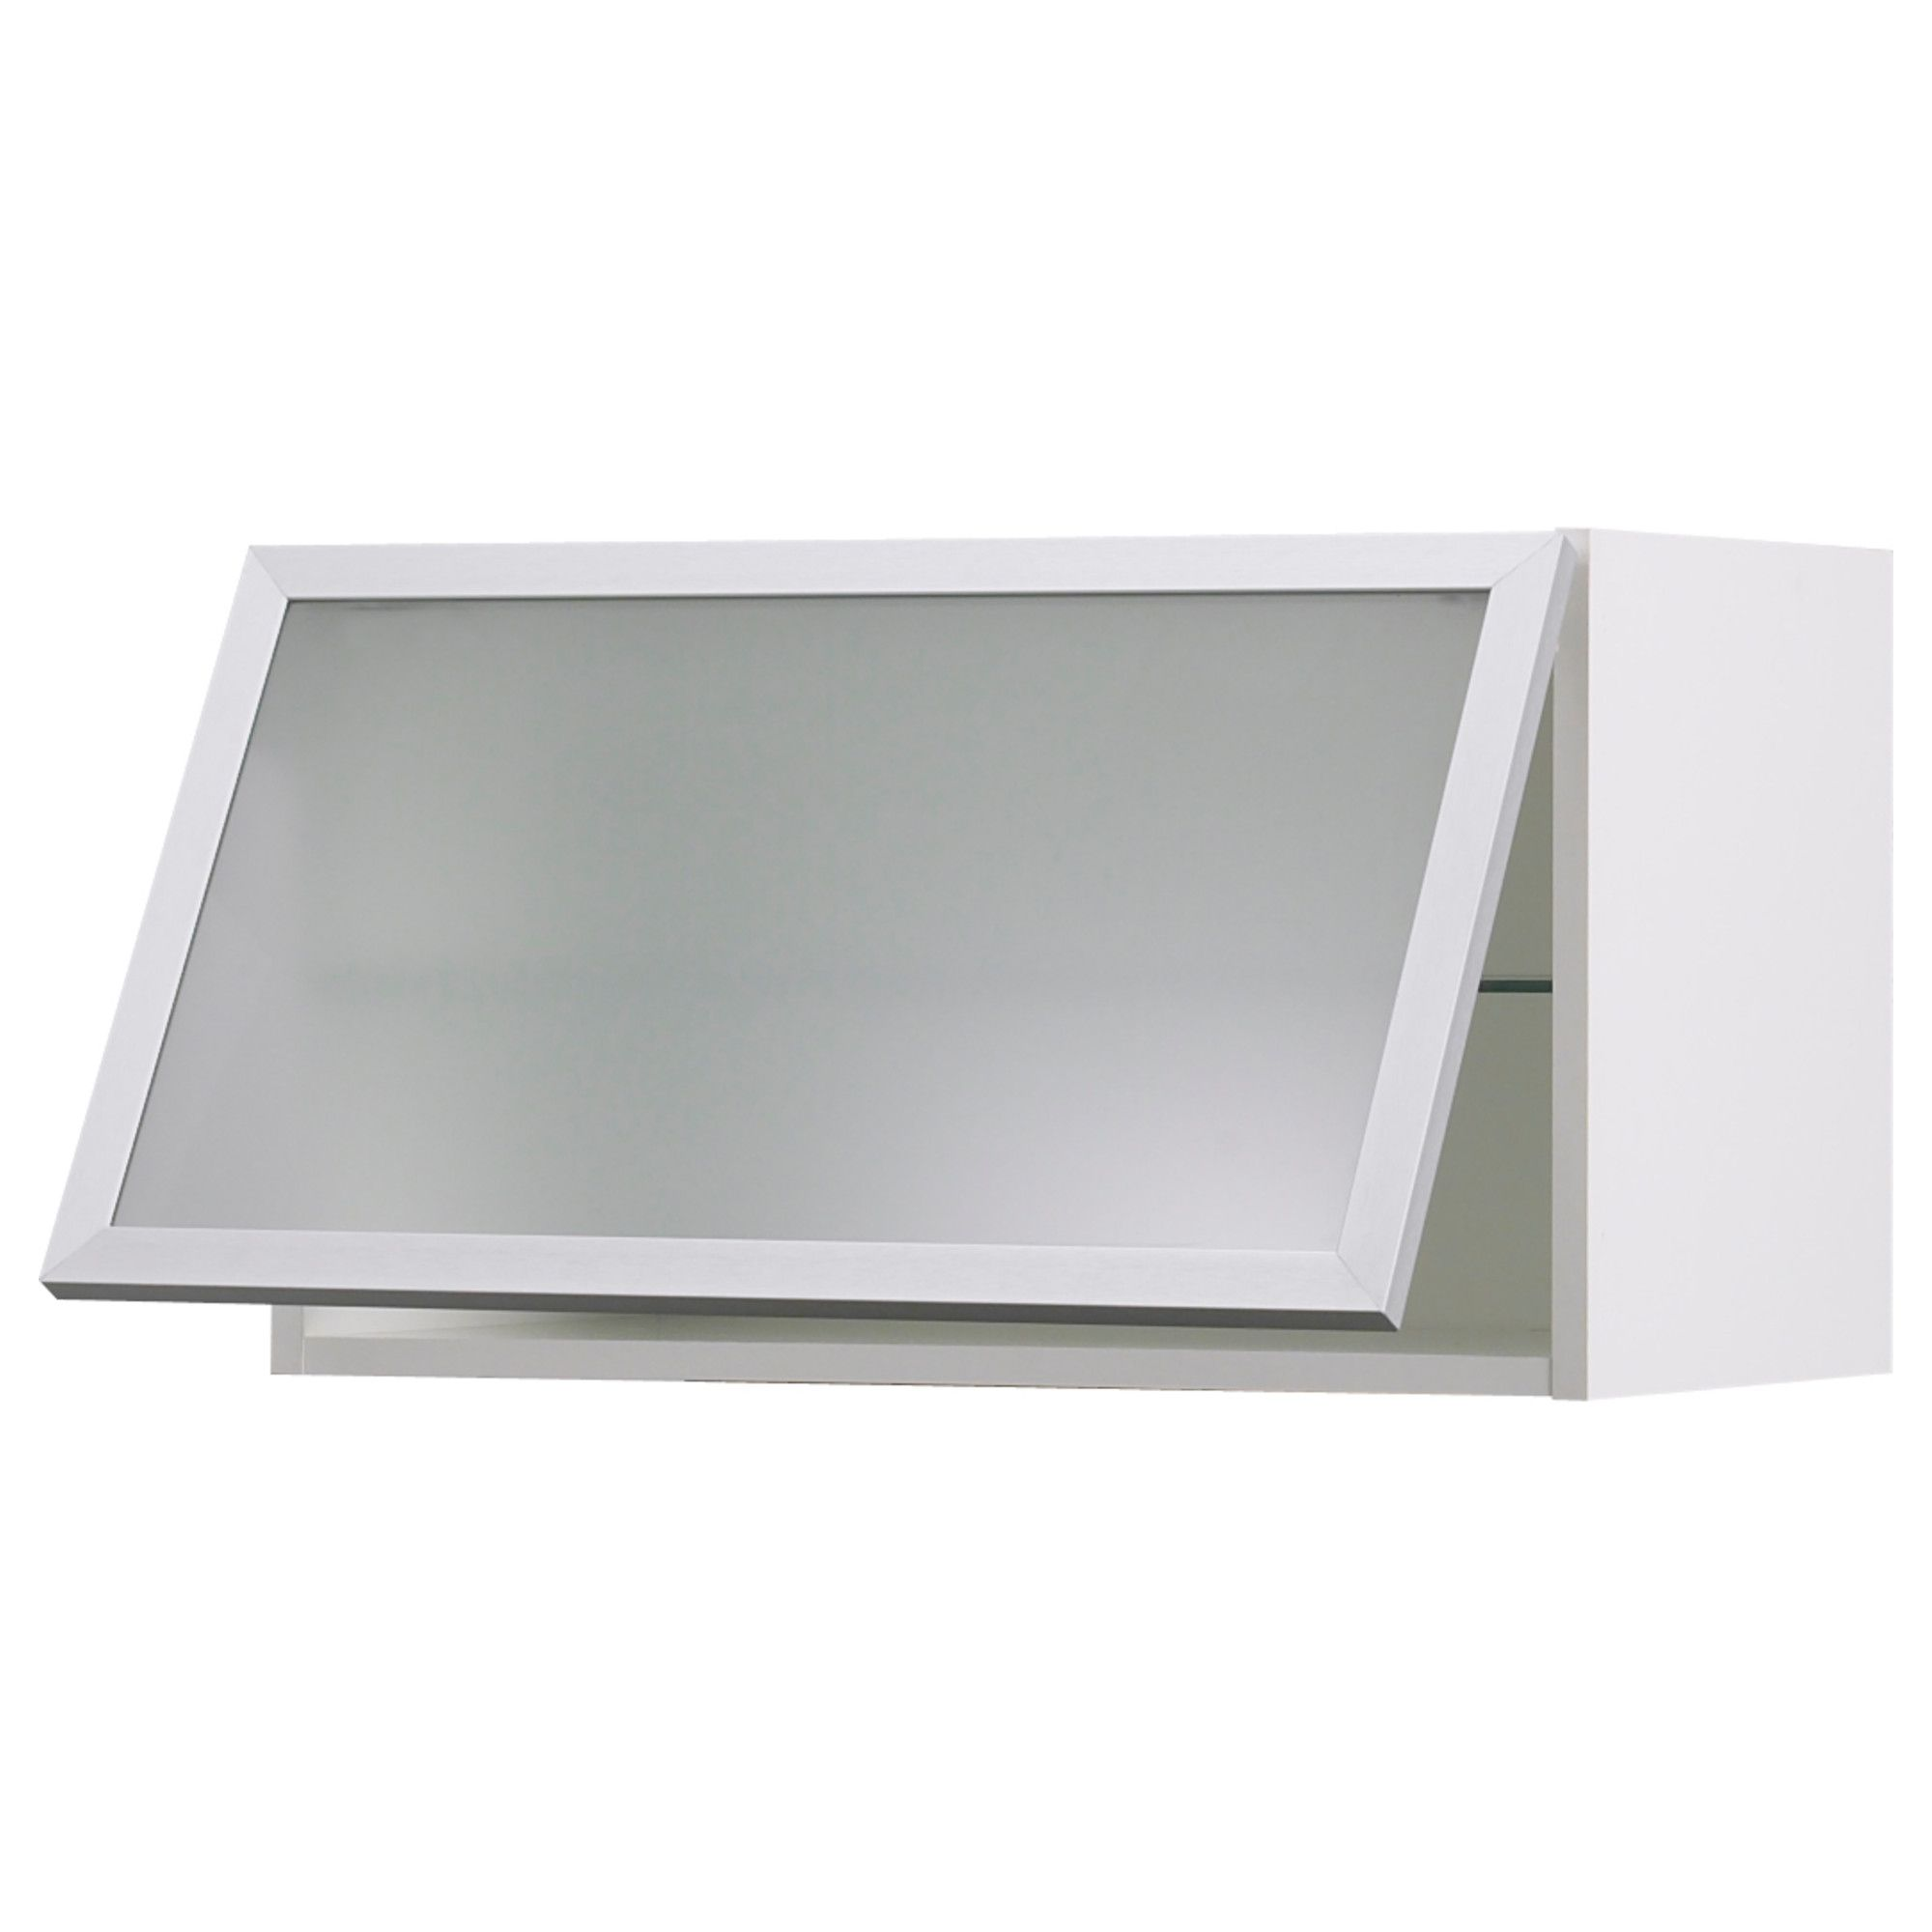 Ikea Us Furniture And Home Furnishings Ikea Small Kitchen Kitchen Wall Cabinets Small Bathroom Wall Cabinet